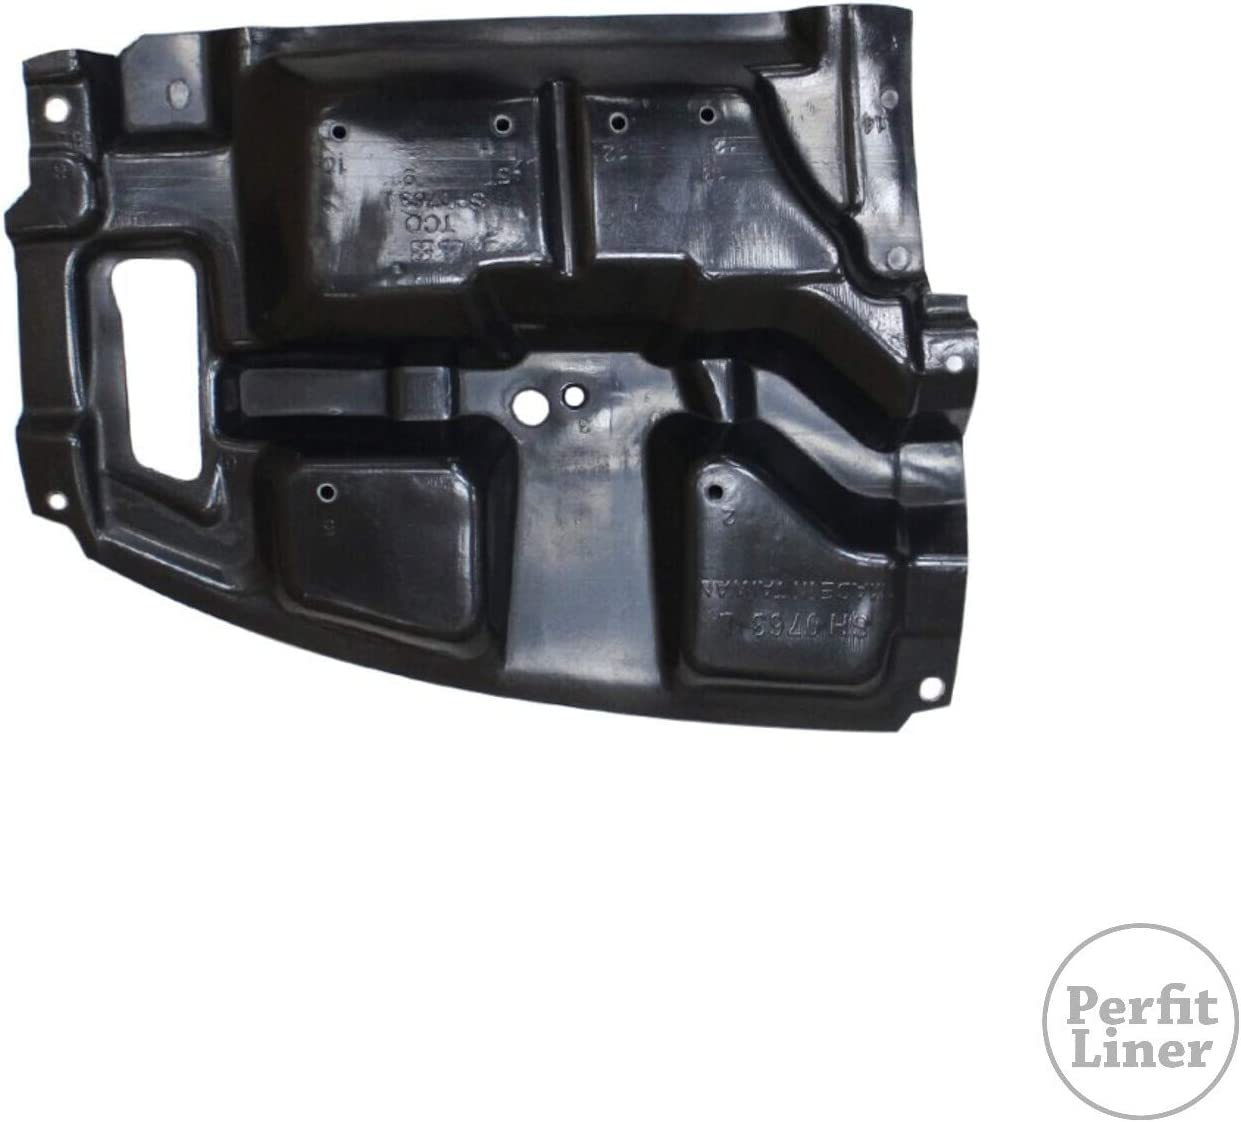 Perfit Liner New Replacement Parts Front Left Driver Side Lower Engine Cover For 05-10 tC Fits SC1228101 5144221030